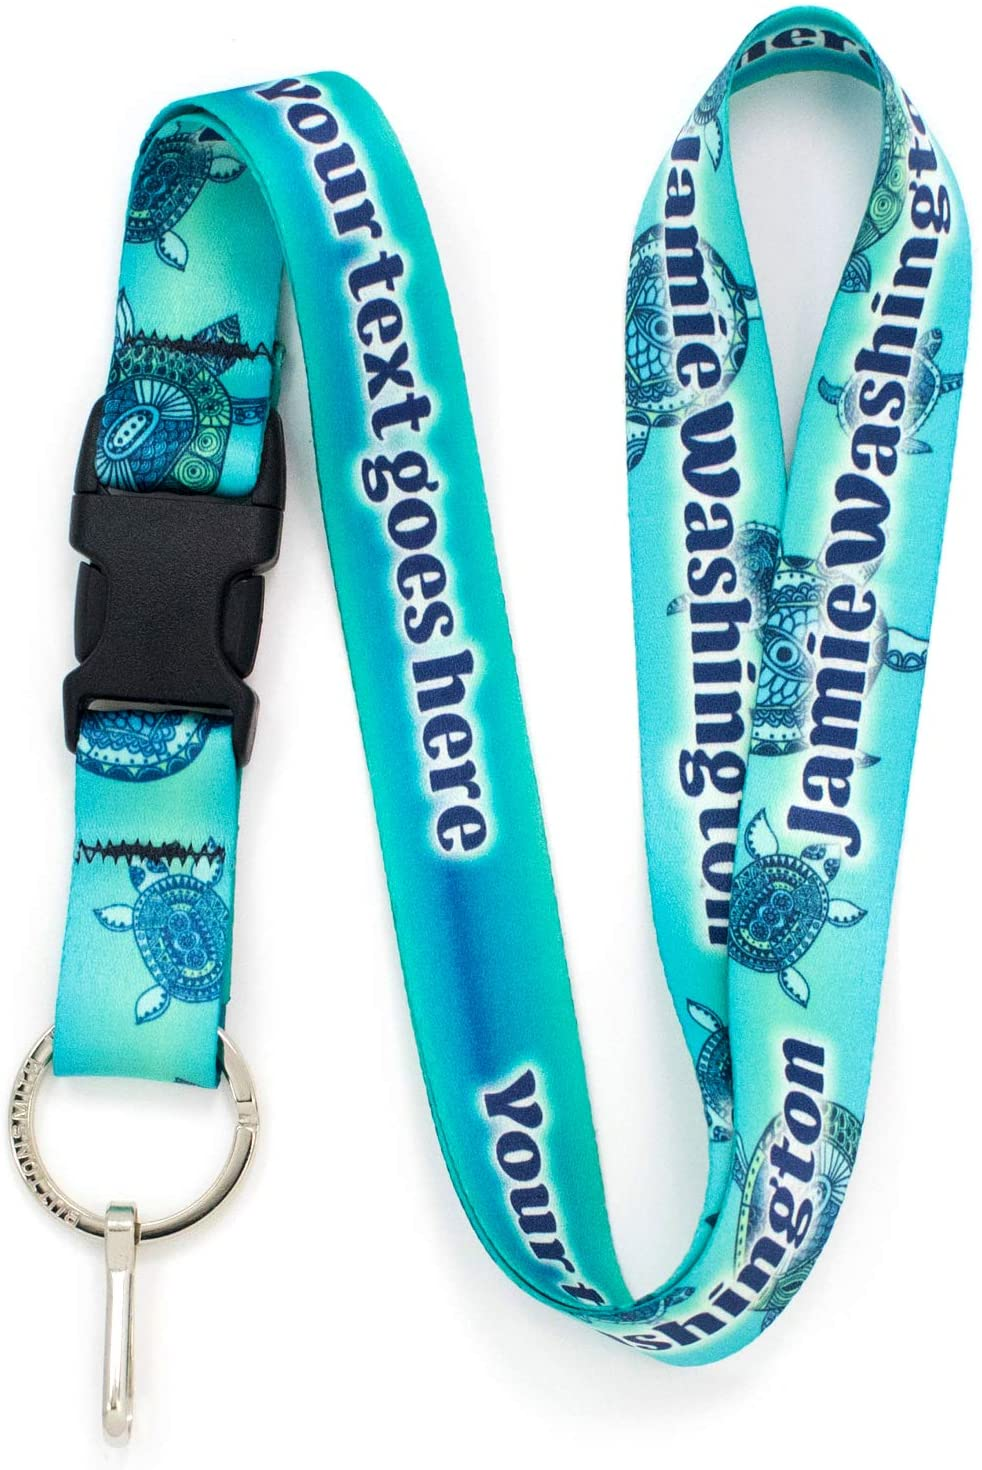 Buttonsmith Turtles Custom Lanyard - Customize with Your Text - Buckle and Flat Ring - Made in The USA